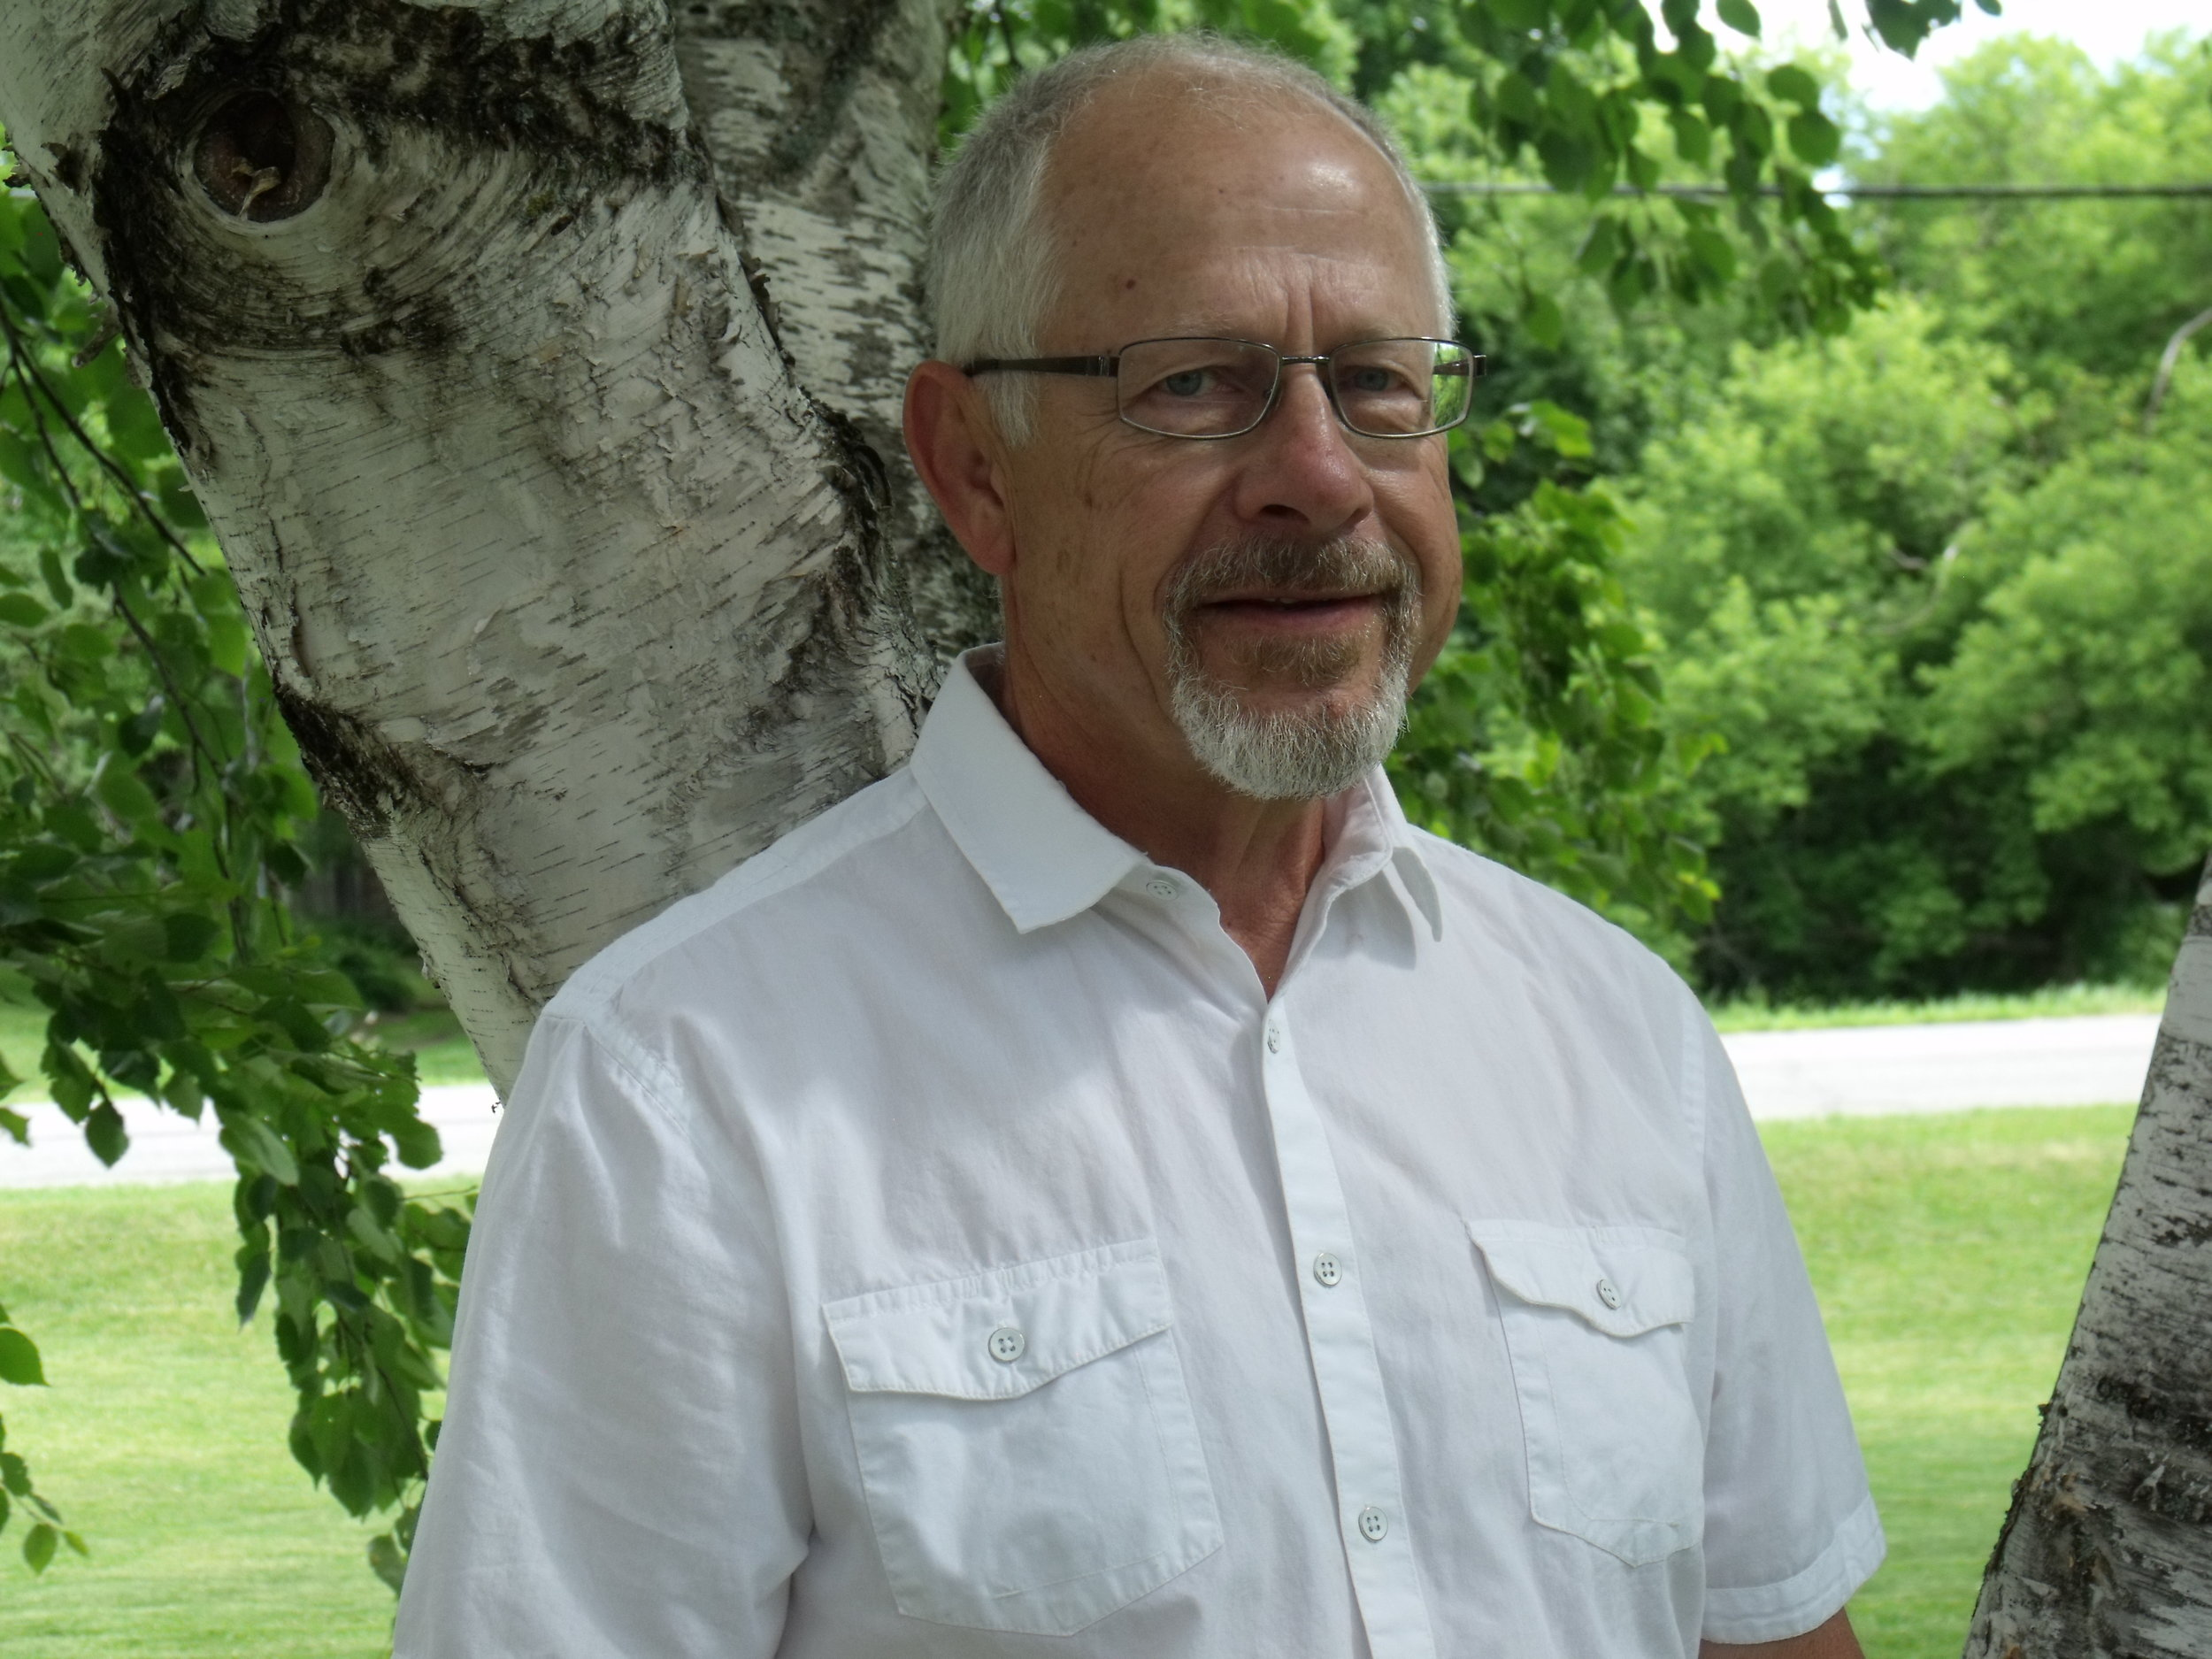 "Jon Benson - Treasurer (Dassel, MN)  Jon Benson is a life long resident of the Dassel area. He has been involved with community theatre in Dassel-Cokato since its inception in the mid-1970's with the Village Players. Since then, he has been involved in numerous productions including, ""Les Miserables"" (Thenardier), ""Fiddler on the Roof"" (Tevye), and ""Plain Hearts"" (director).  Jon looks forward to serving on the board of directors of the Fungus Amongus Players."